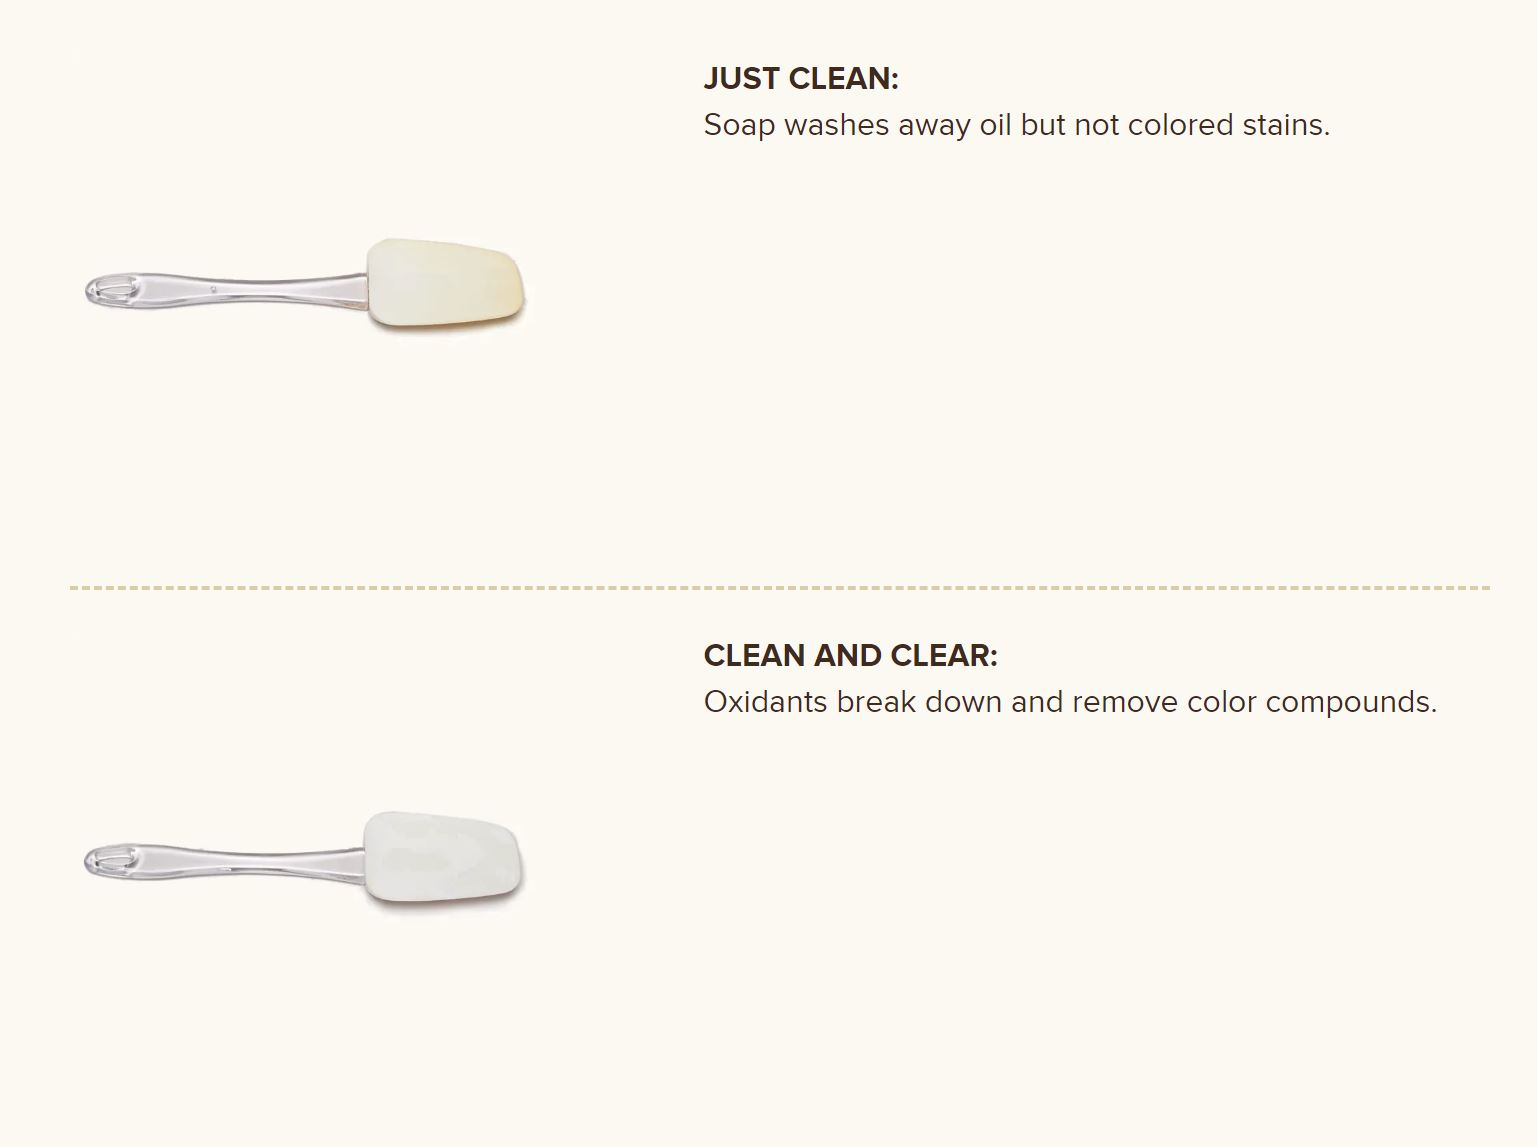 credit:  https://www.cooksillustrated.com/how_tos/8614-removing-stains-from-silicone-spatulas?fbclid=IwAR1N5qq5RQ-aBIO5ewjsn_X-iBX-HBsuGhcyB7Unv_WwrbDhWP8iQh67ivY